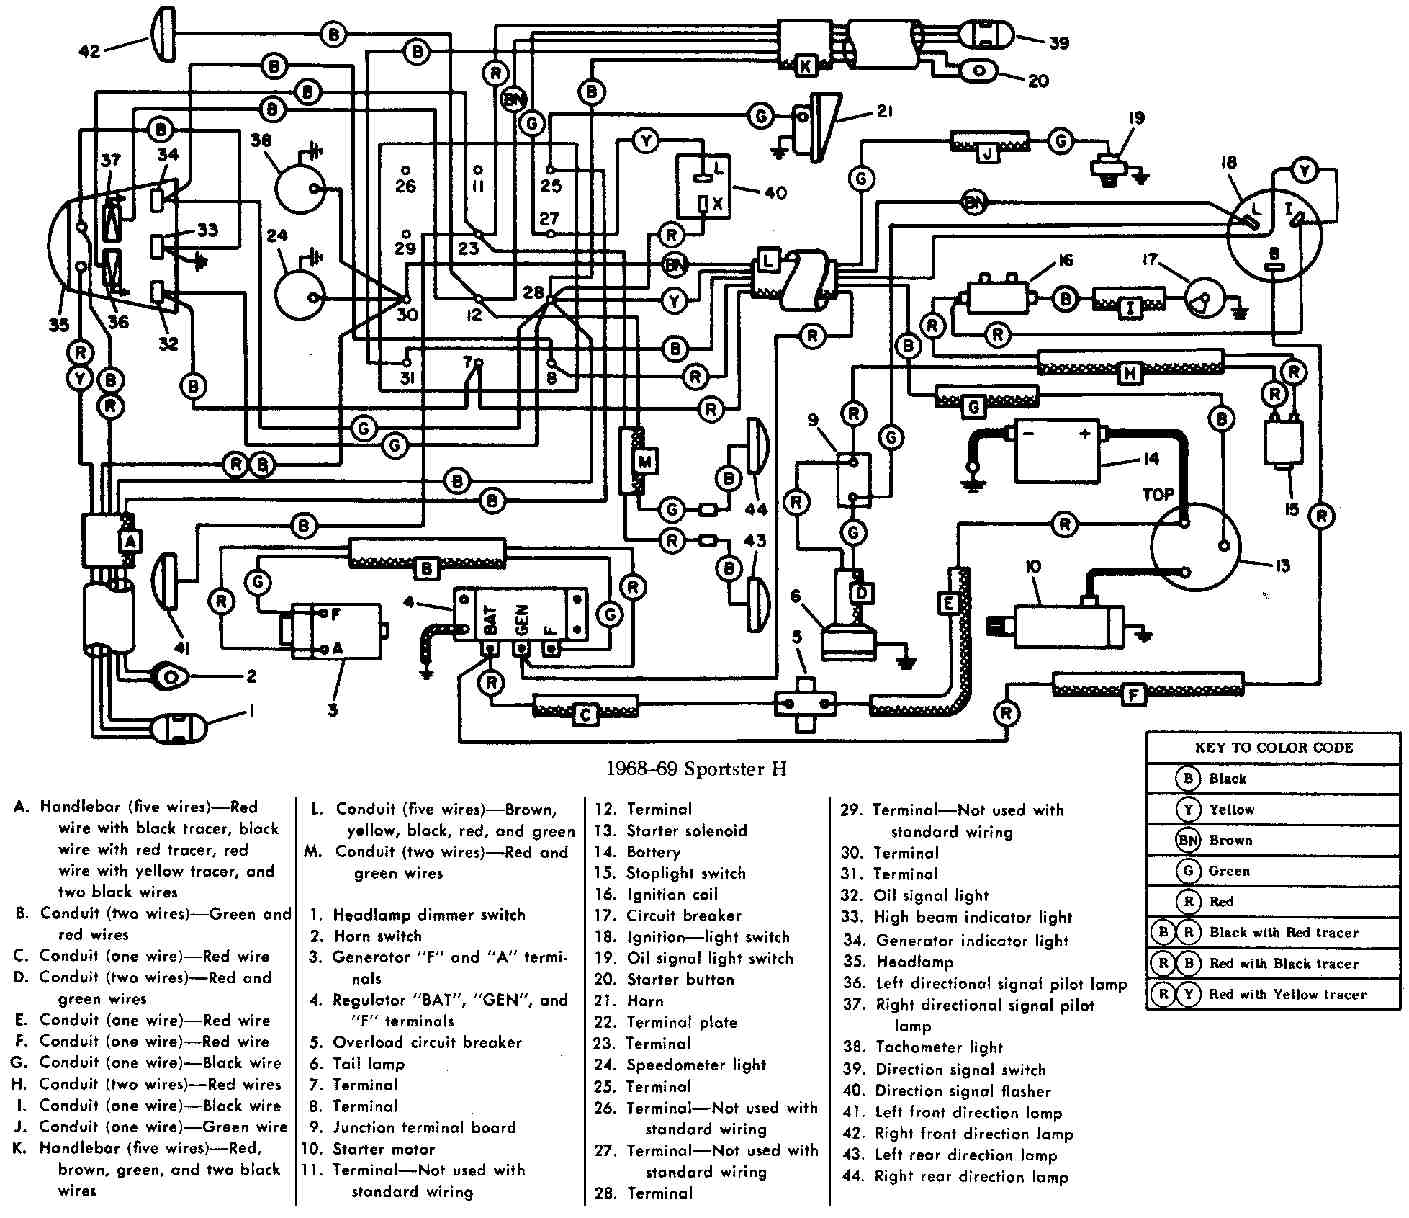 f100 ignition wiring diagram html with Harley Davidson Sportster 1968 1969 on 1987 Ford F 150 Fuse Box Diagram Html also Ignition Tumbler Diagram as well Ford duraspark 2 further Fitting guide likewise 912410 Wiring Diagram 4 Electronic Ignition.